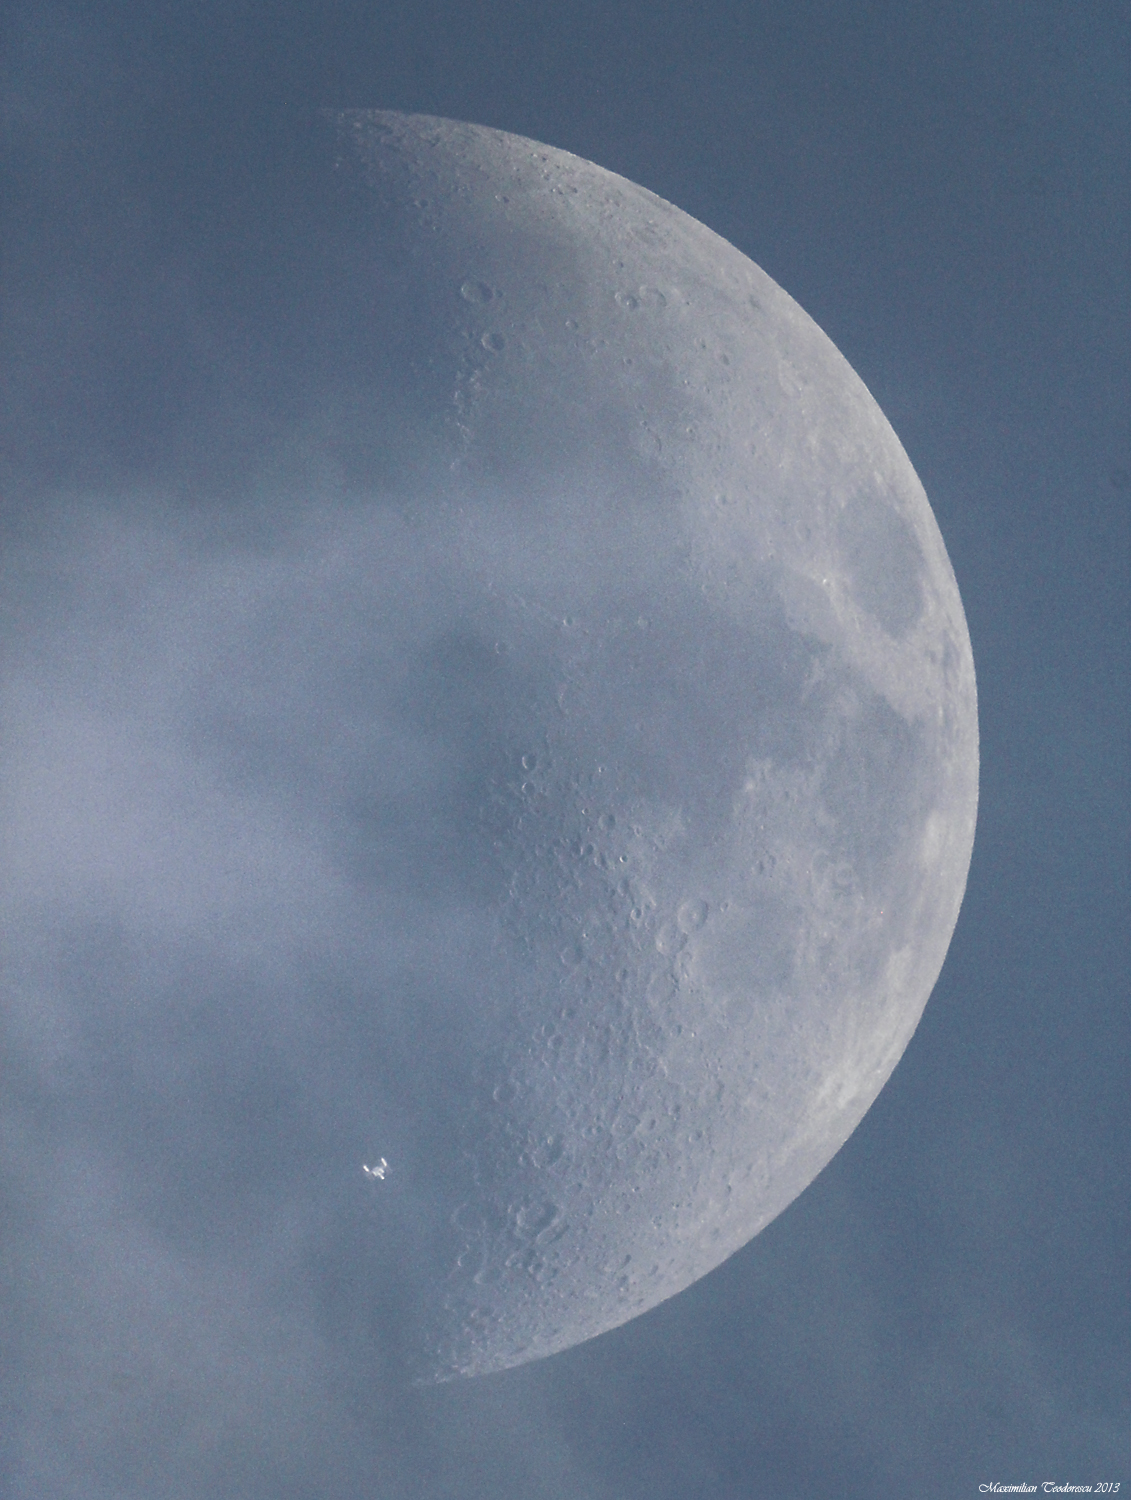 moon space station - photo #9